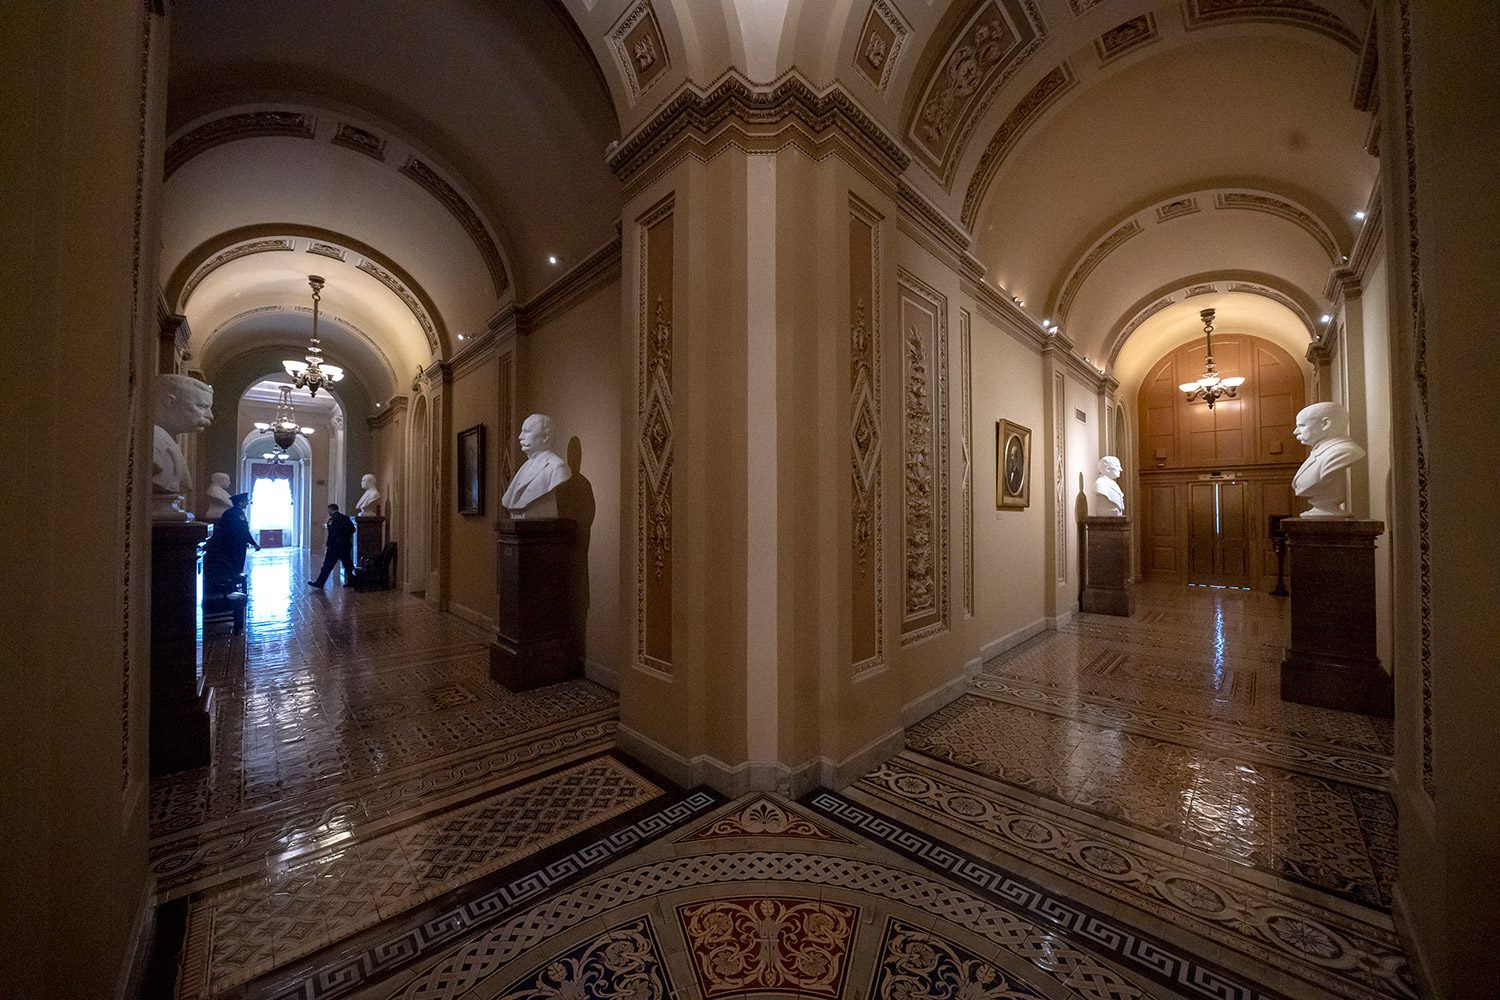 Corridors around the Senate are empty Thursday during the partial government shutdown, which will continue at least until new lawmakers are sworn in Jan. 3.